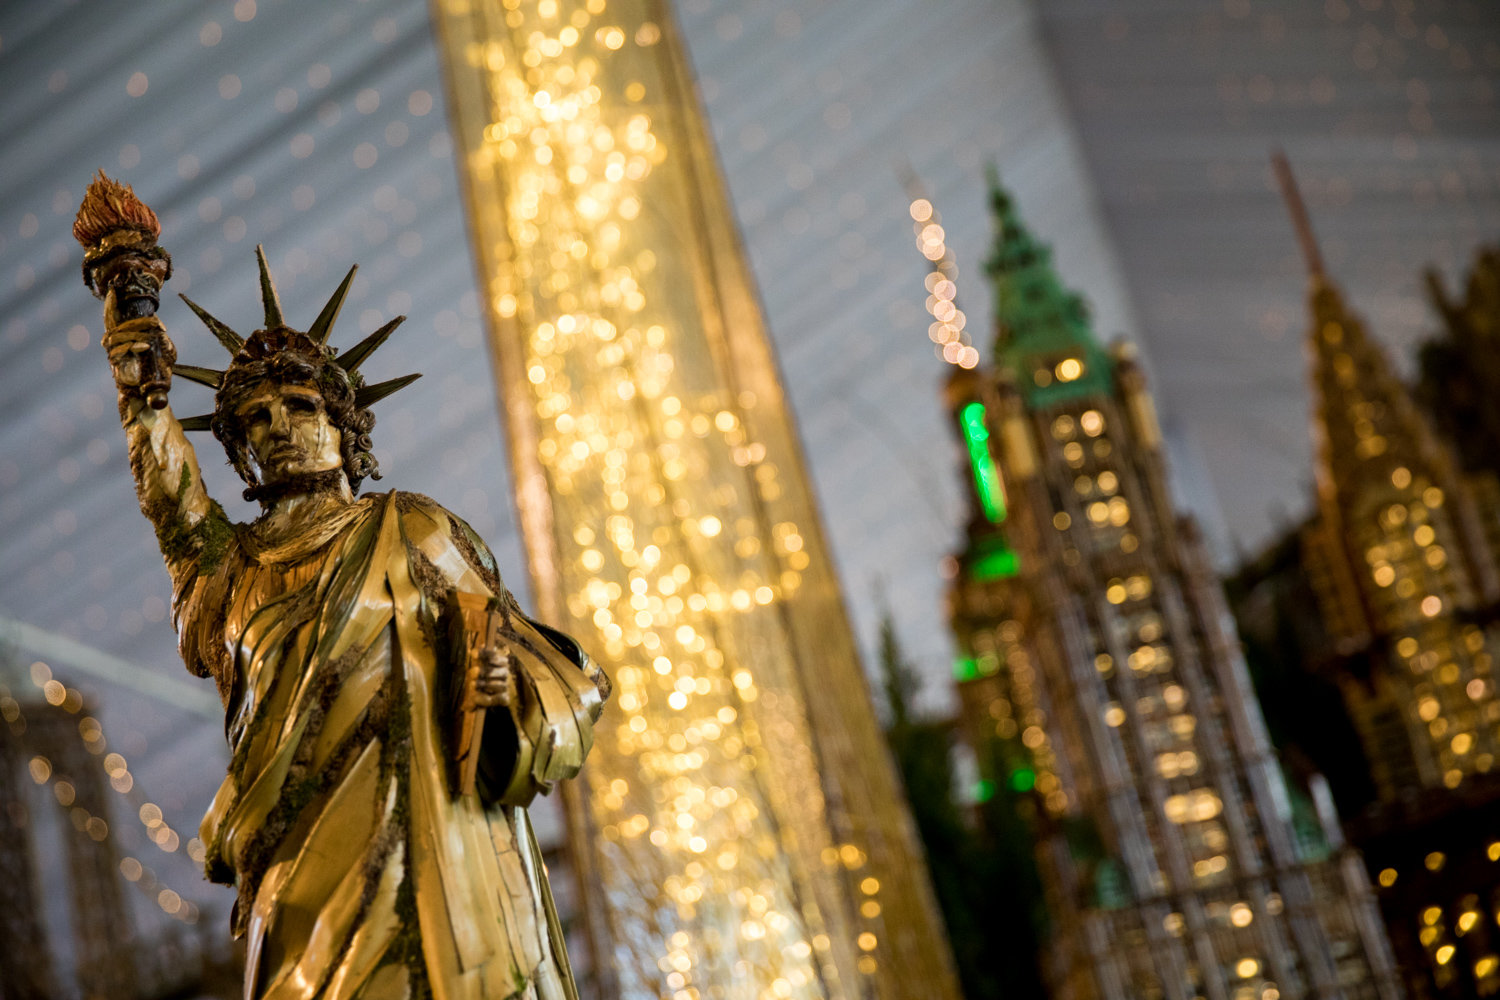 A replica of the Statue of Liberty stands in front of the skyline of Lower Manhattan in the Holiday Train Show at the New York Botanical Garden.